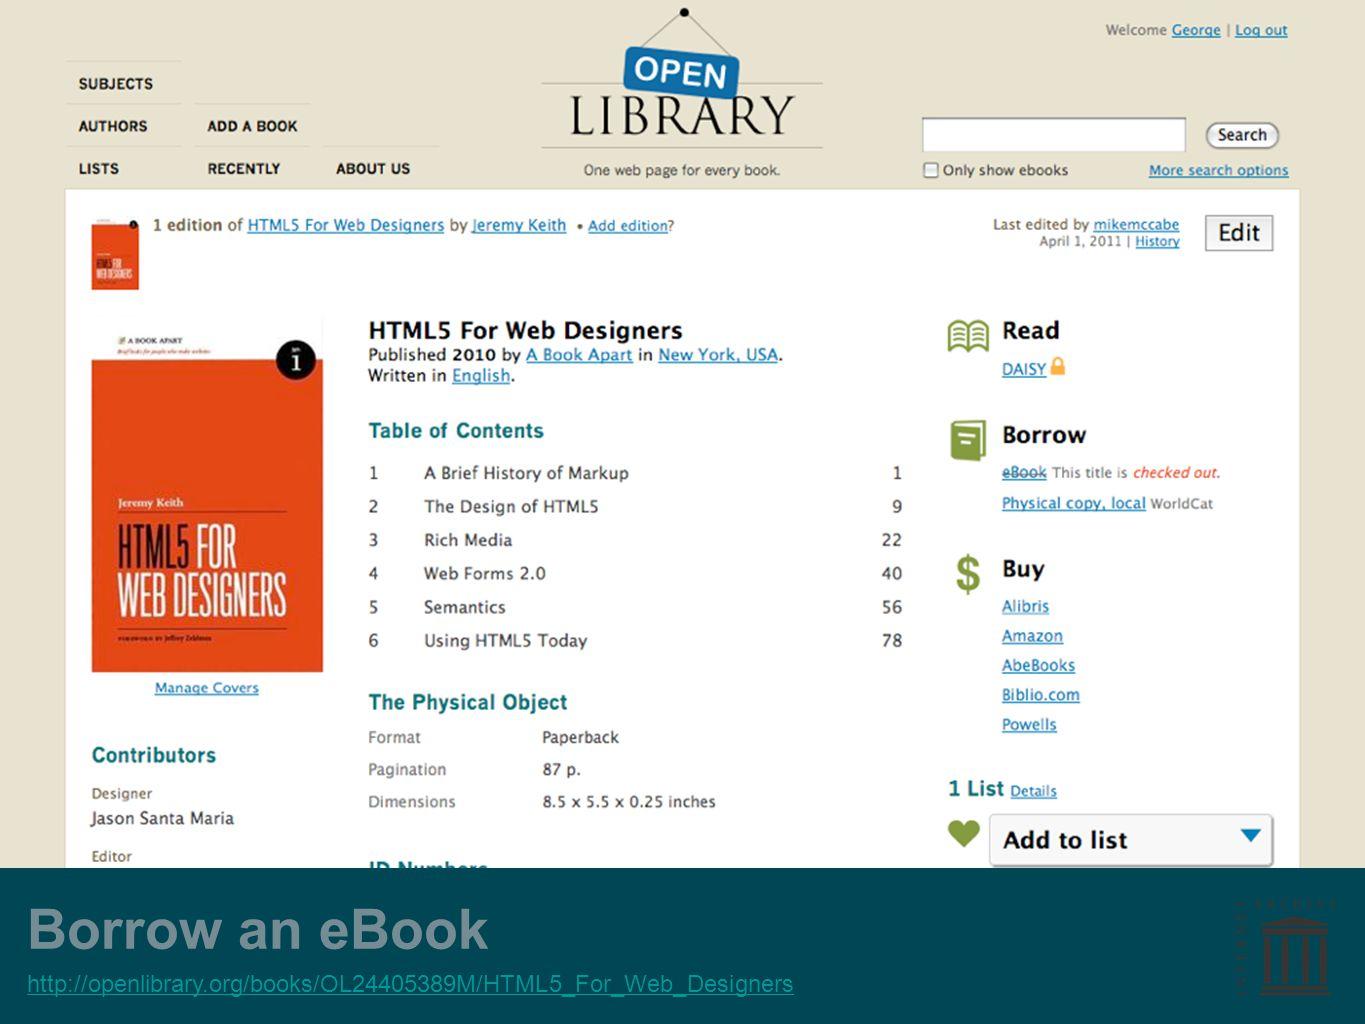 Borrow an eBook http://openlibrary.org/books/OL24405389M/HTML5_For_Web_Designers